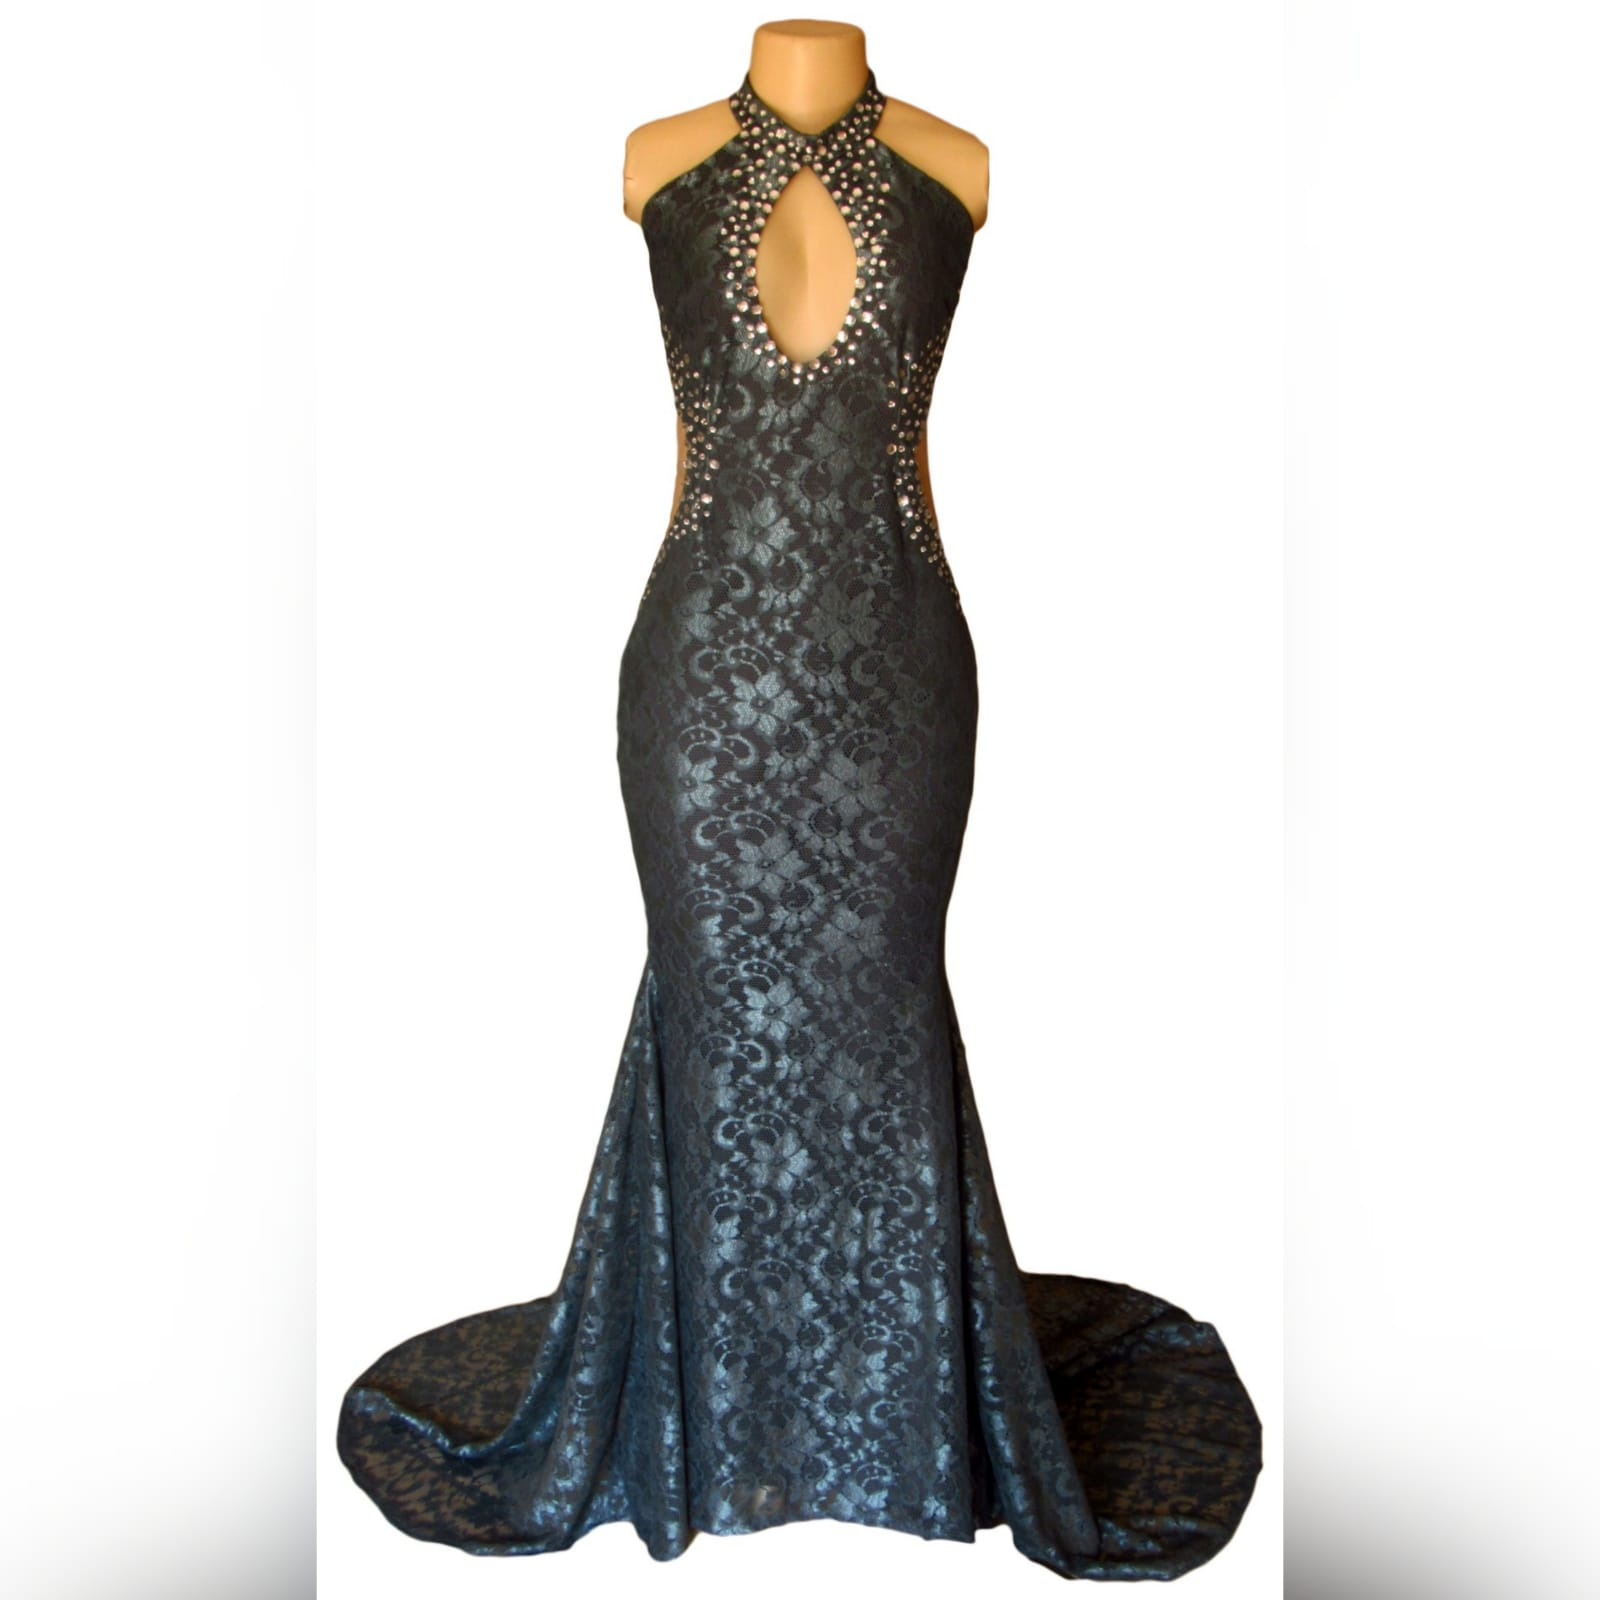 Choker gray fully laced long prom dress 7 gray fully laced long prom dress with a choker neckline and a cleavage opening and side tummy openings with a train. Detailed with silver beads.